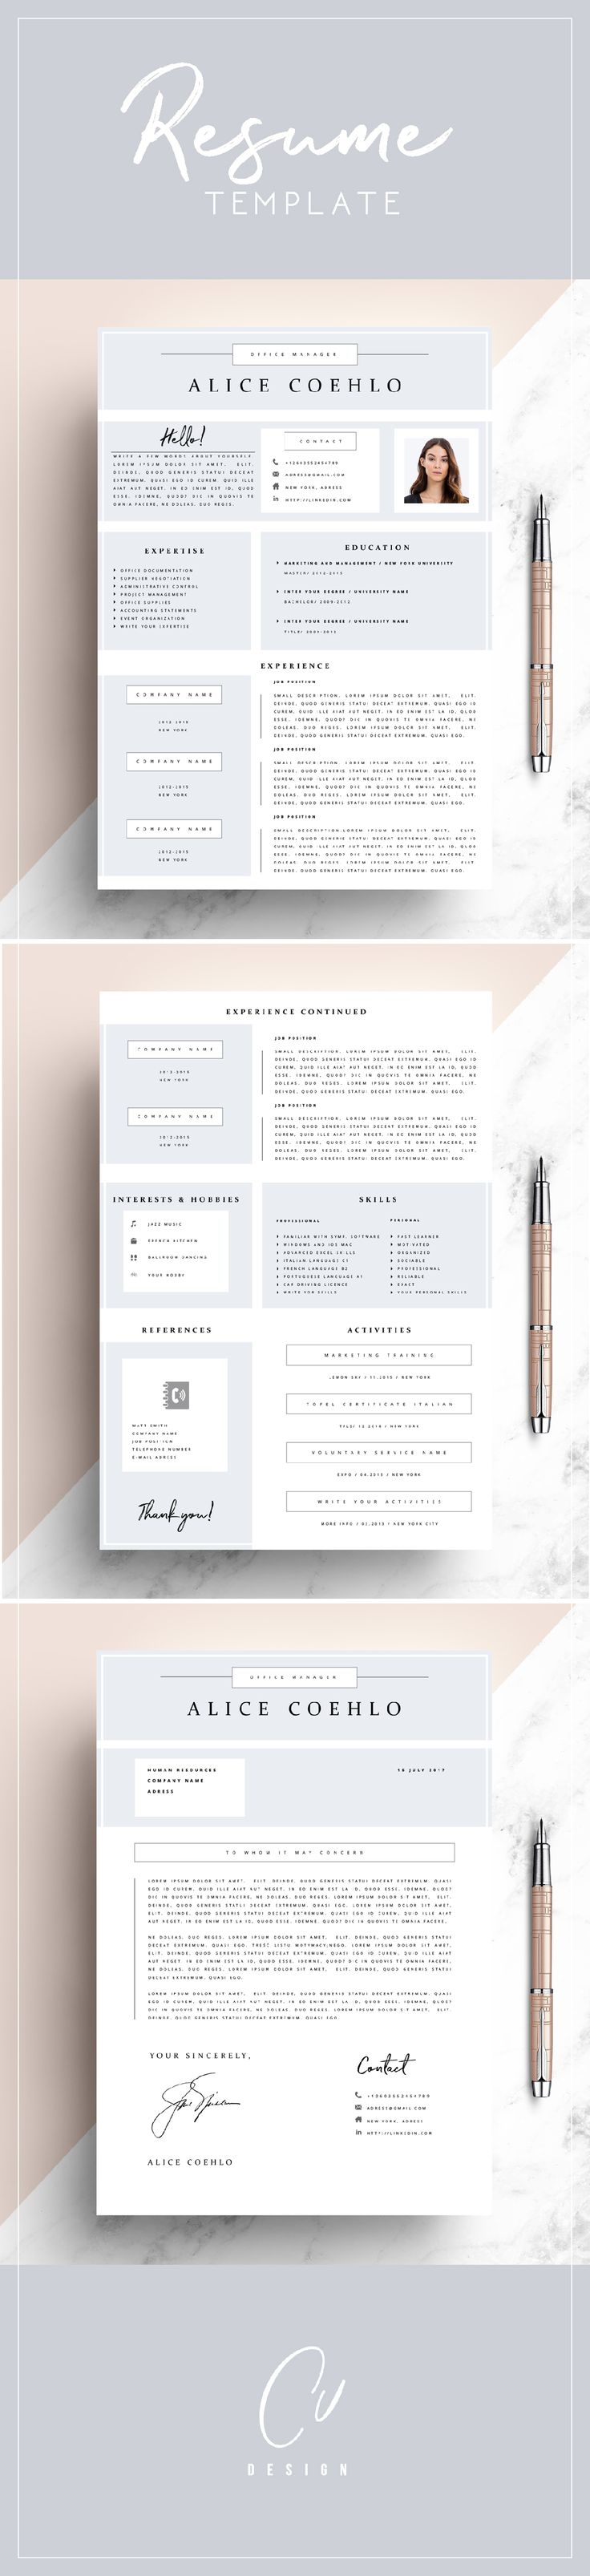 Check Out This Amazing MS Word Editable Resume Template!